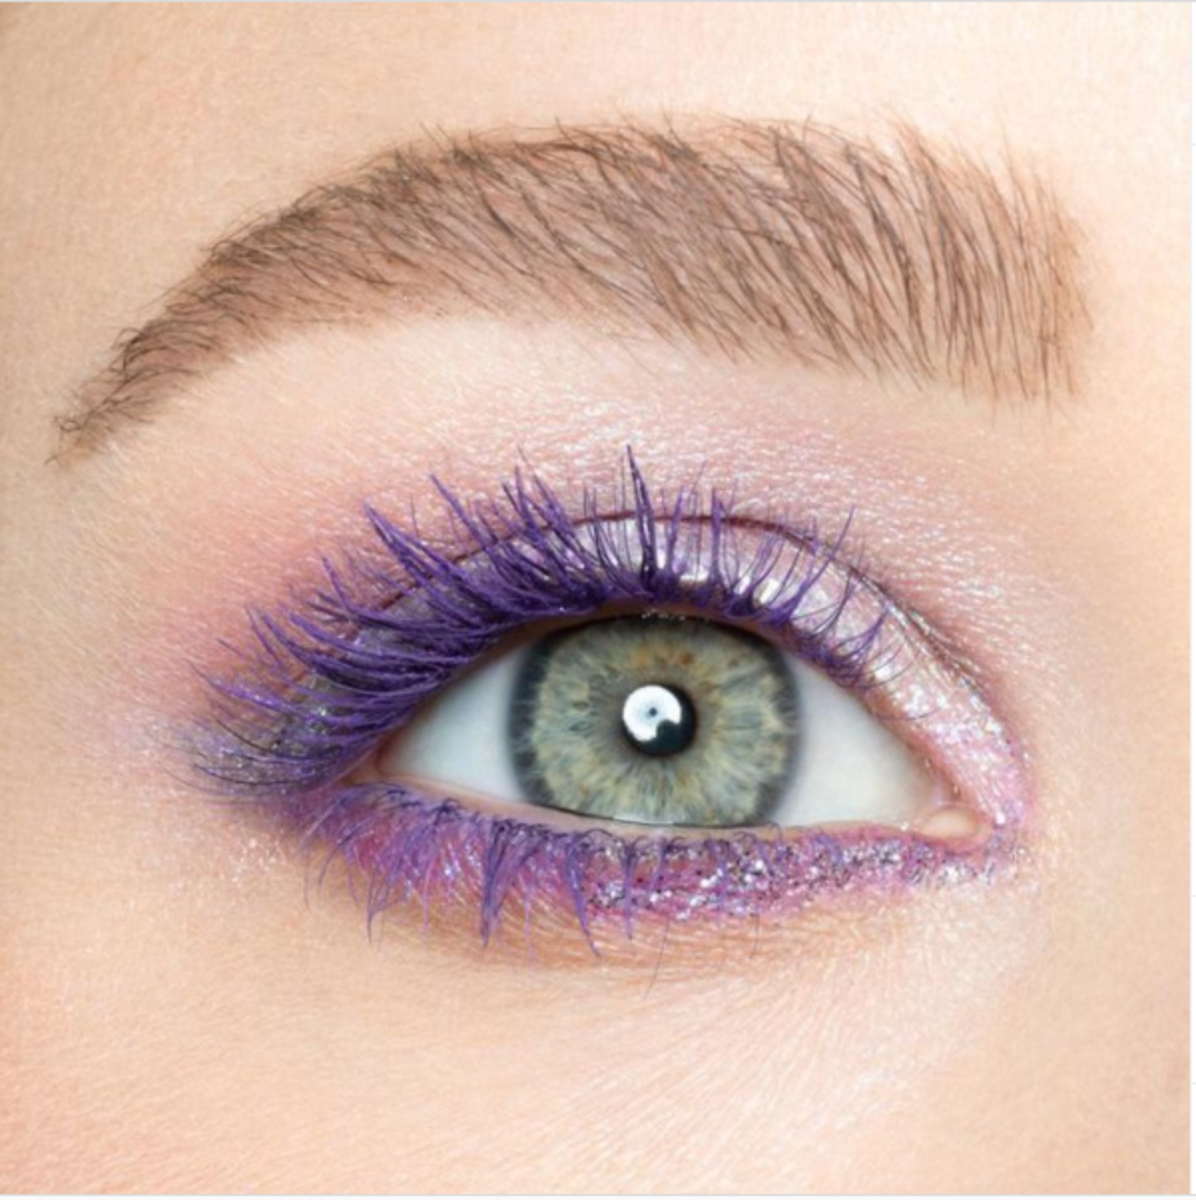 Green eyes with purple mascara.